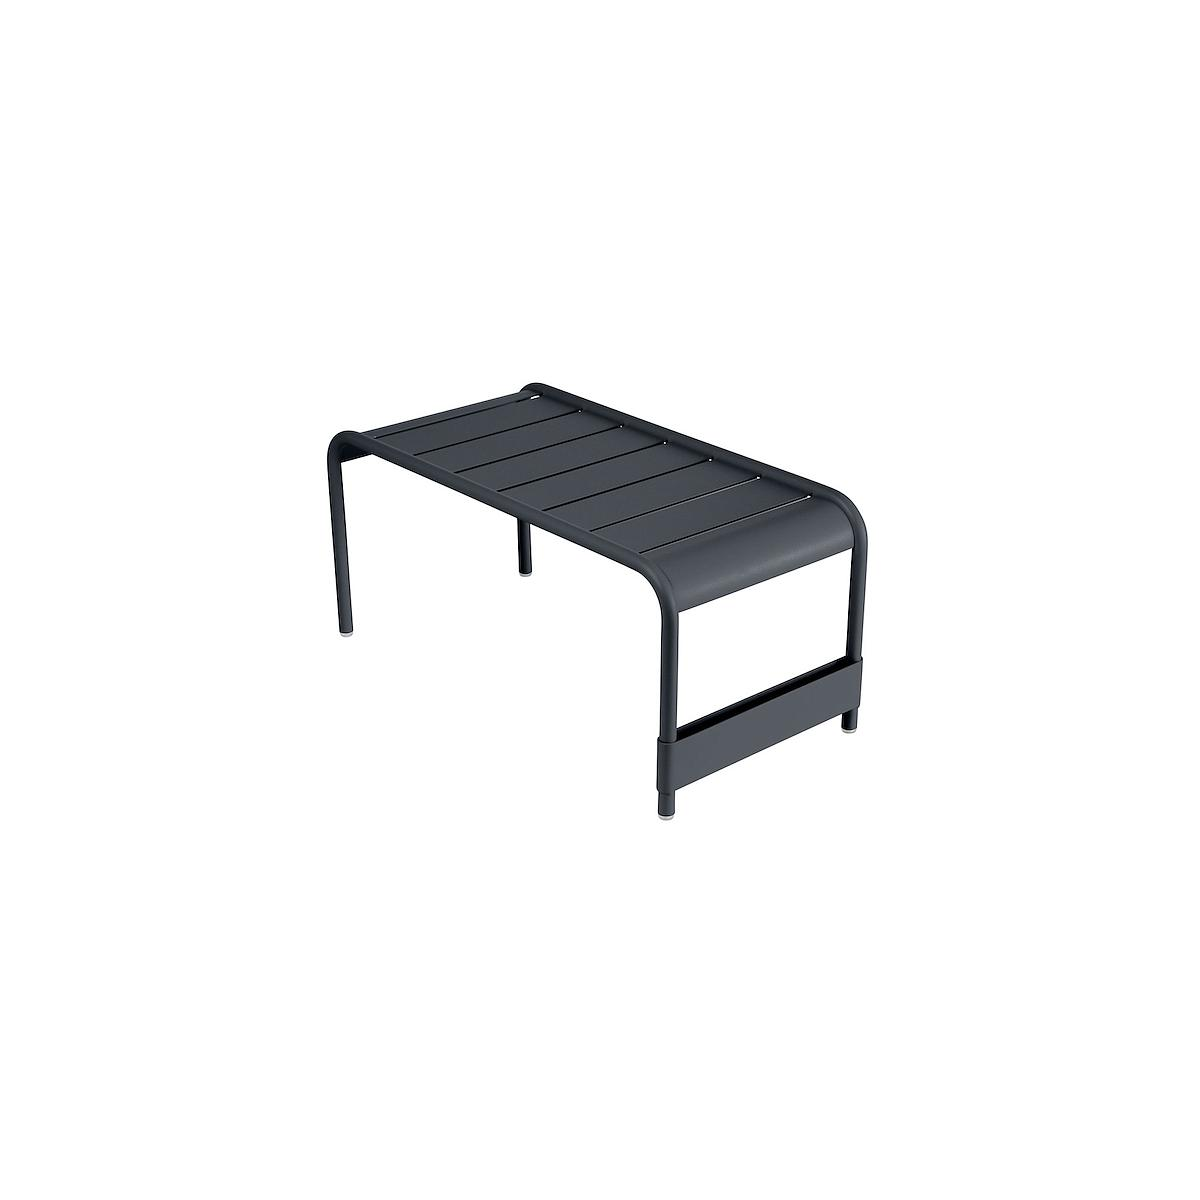 LUXEMBOURG by Fermob Grande table basse carbone